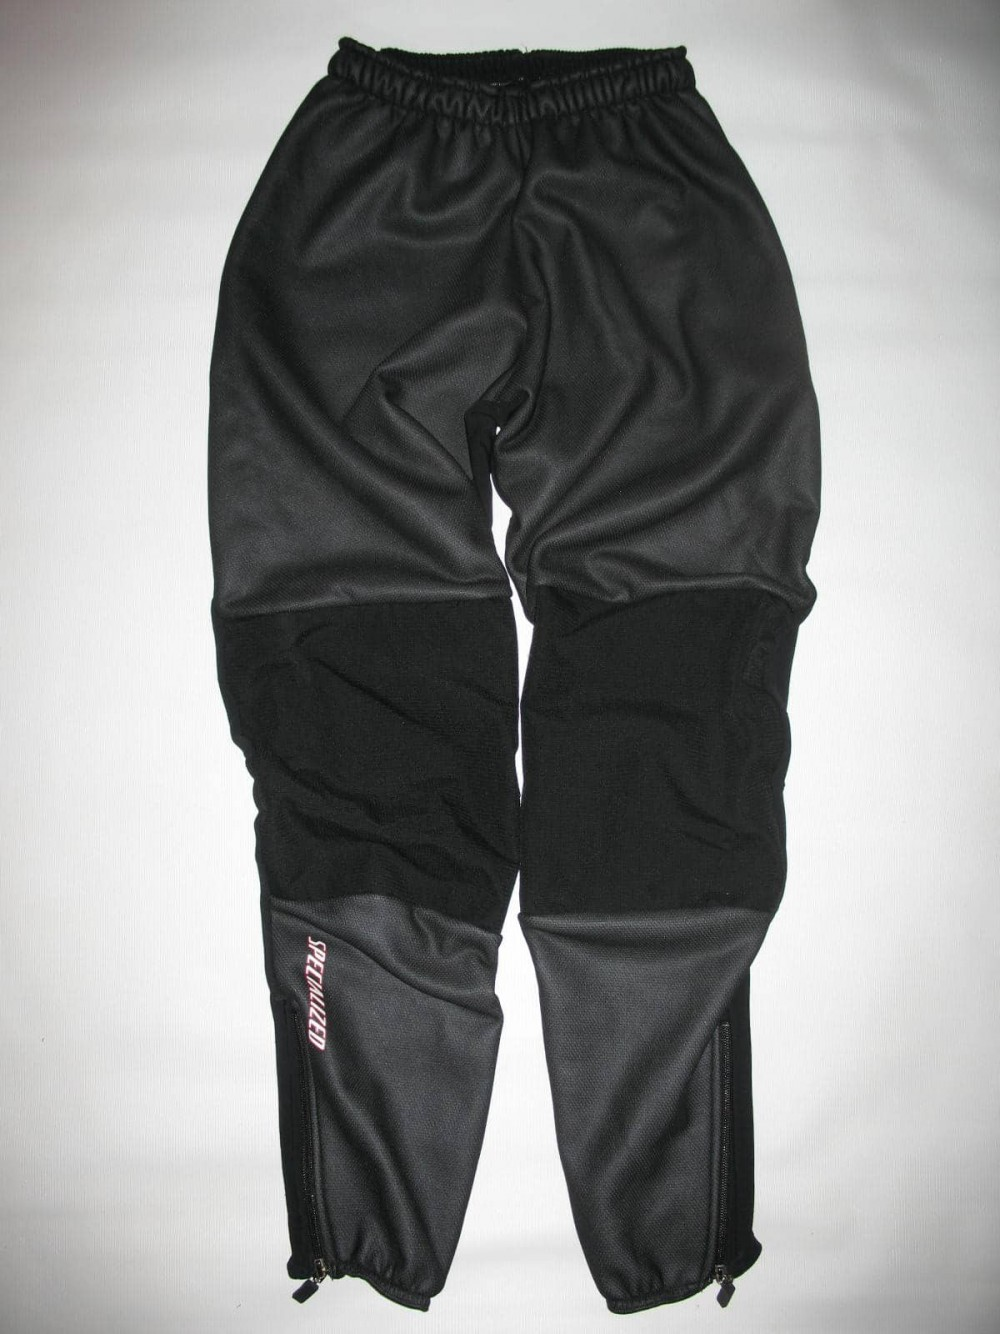 Велобрюки SPECIALIZED windtex cycling pants (размер 5/XL) - 1